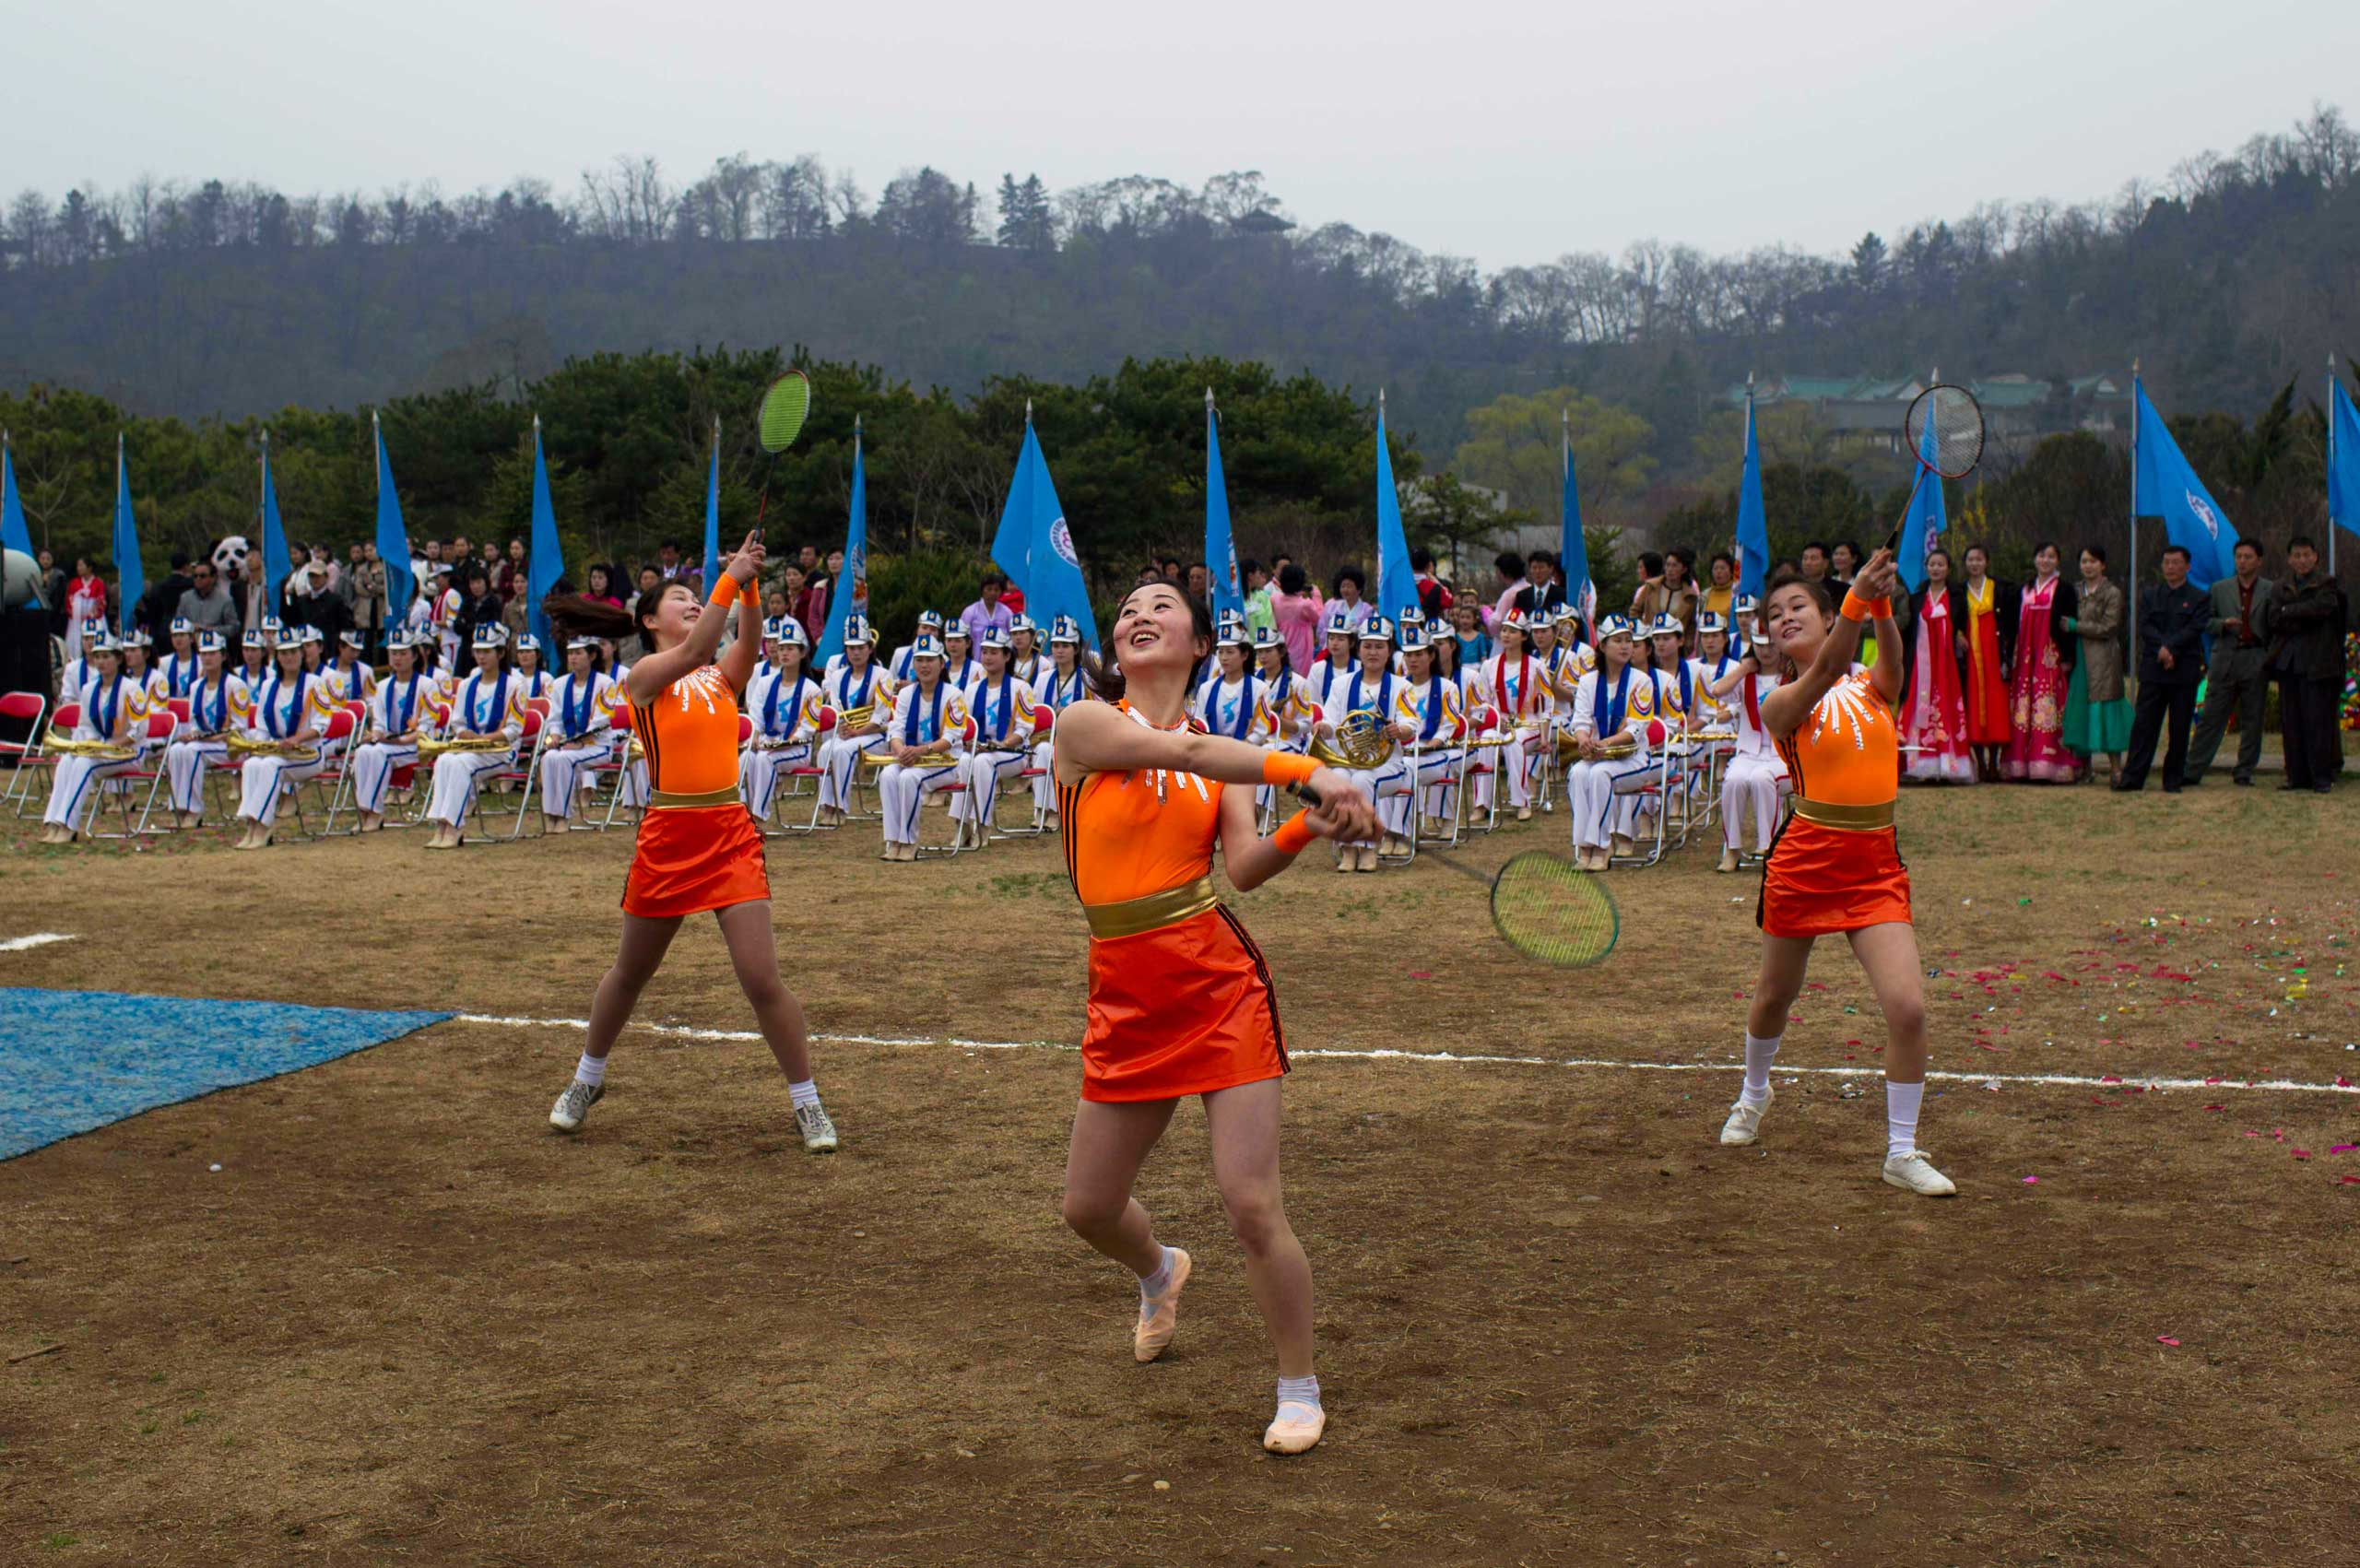 April 15, 2011. Women perform a dance routine with badminton rackets at an event to mark the birthday of Kim Il Sung at a park in Pyongyang, North Korea.